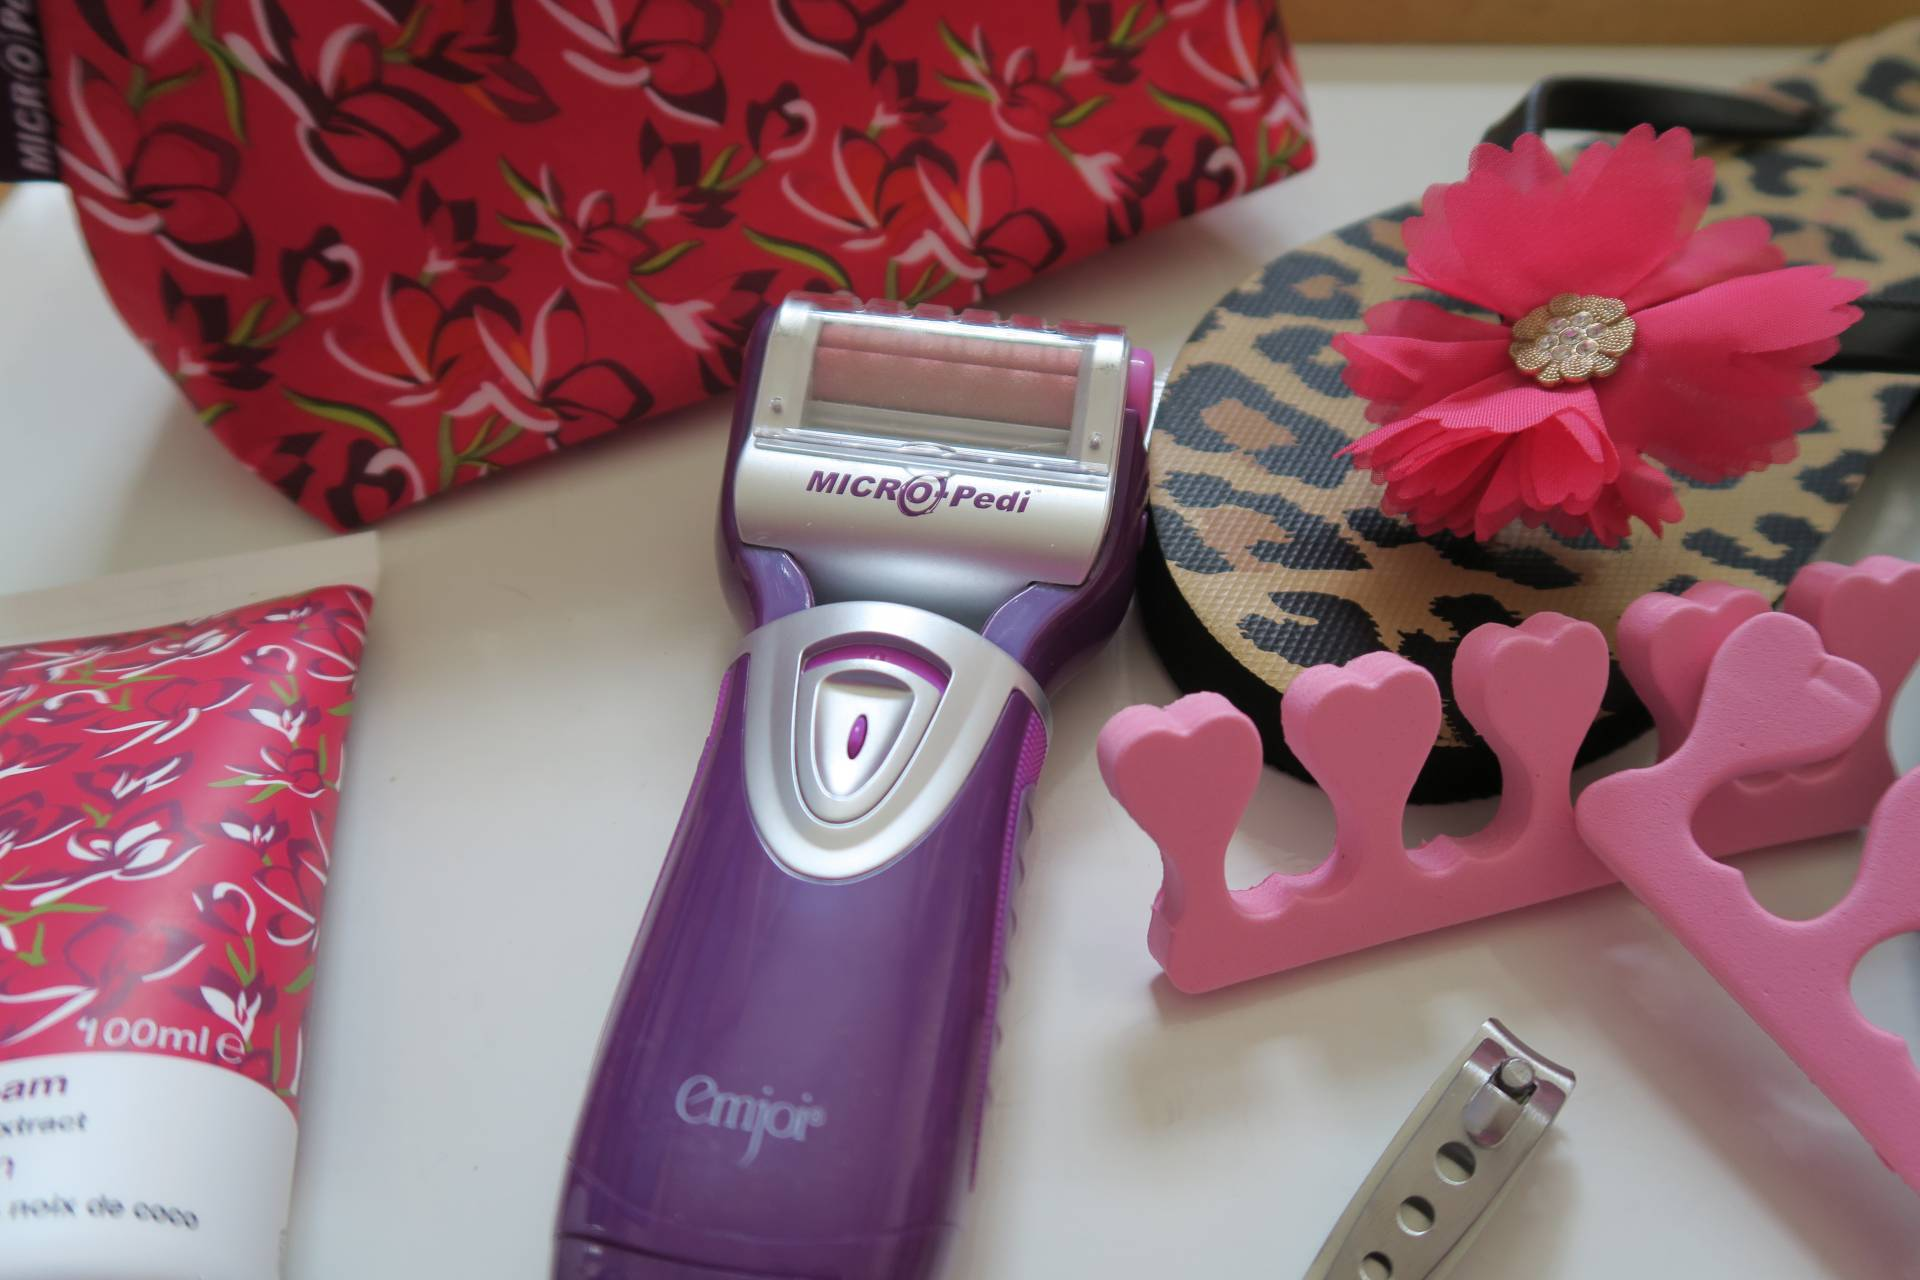 Read my review of the emjoi micro pedi gift set with extras, a must for your feet!